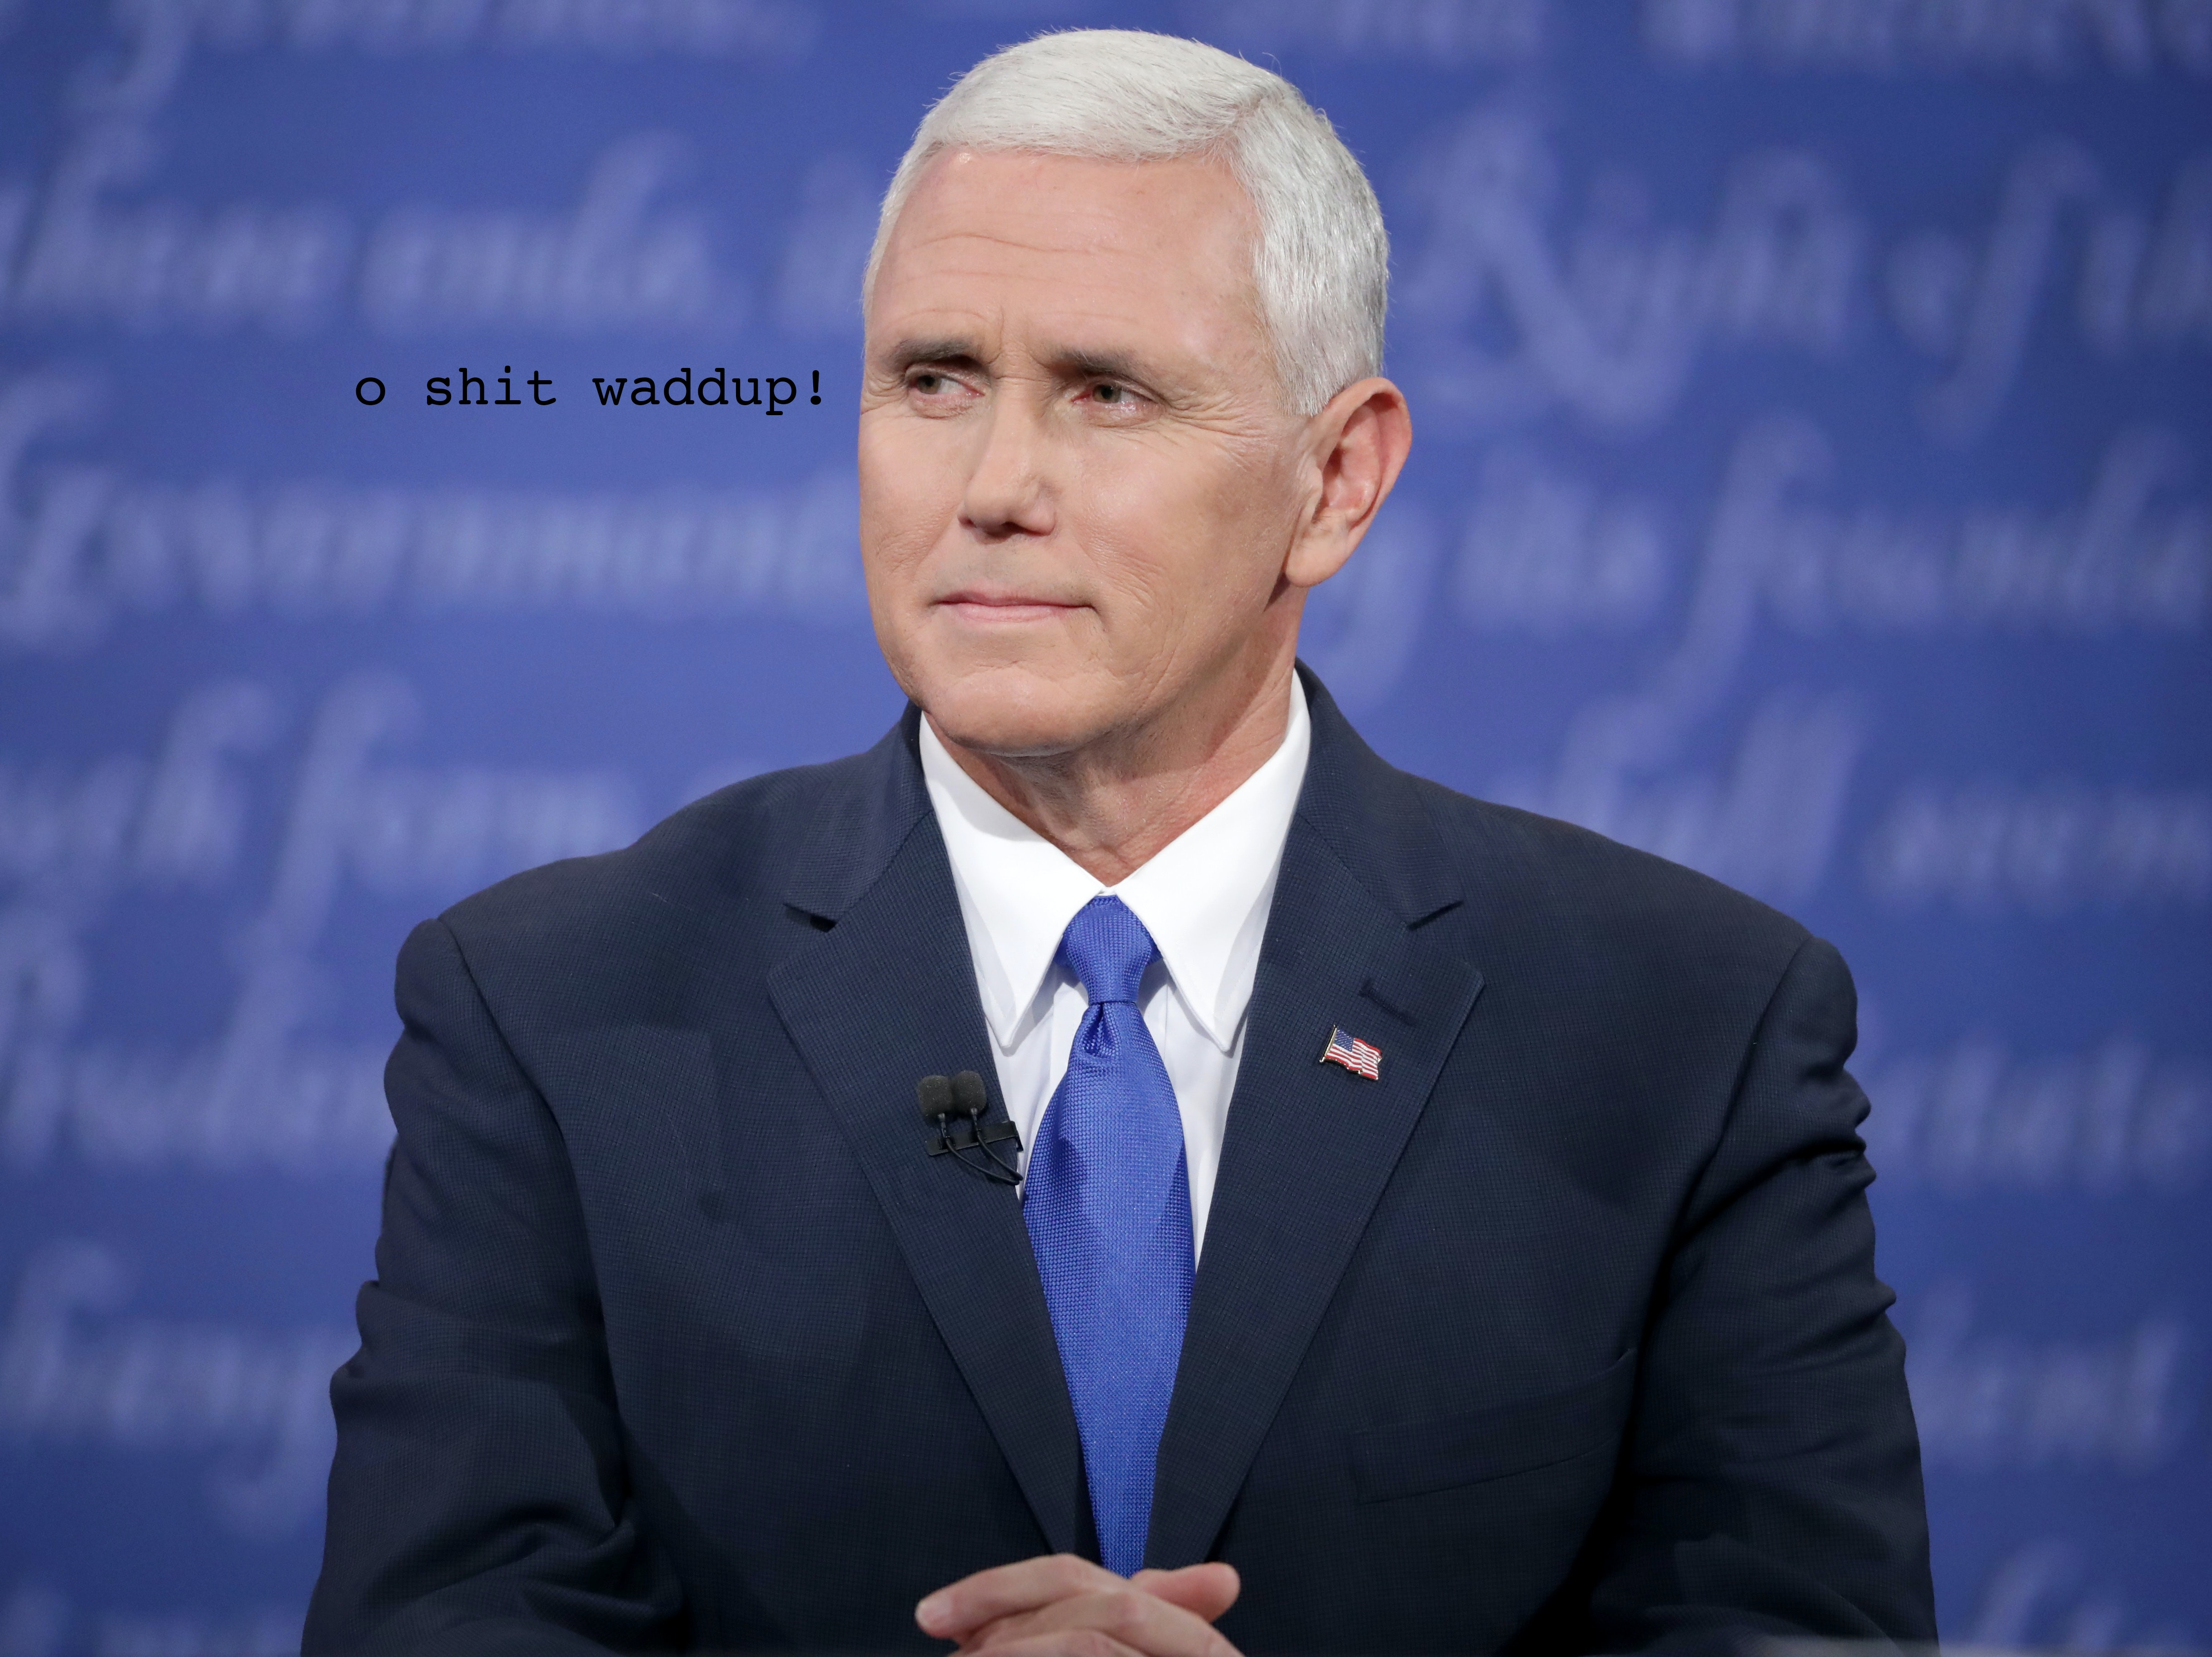 Are there going to be any Mike Pence memes?